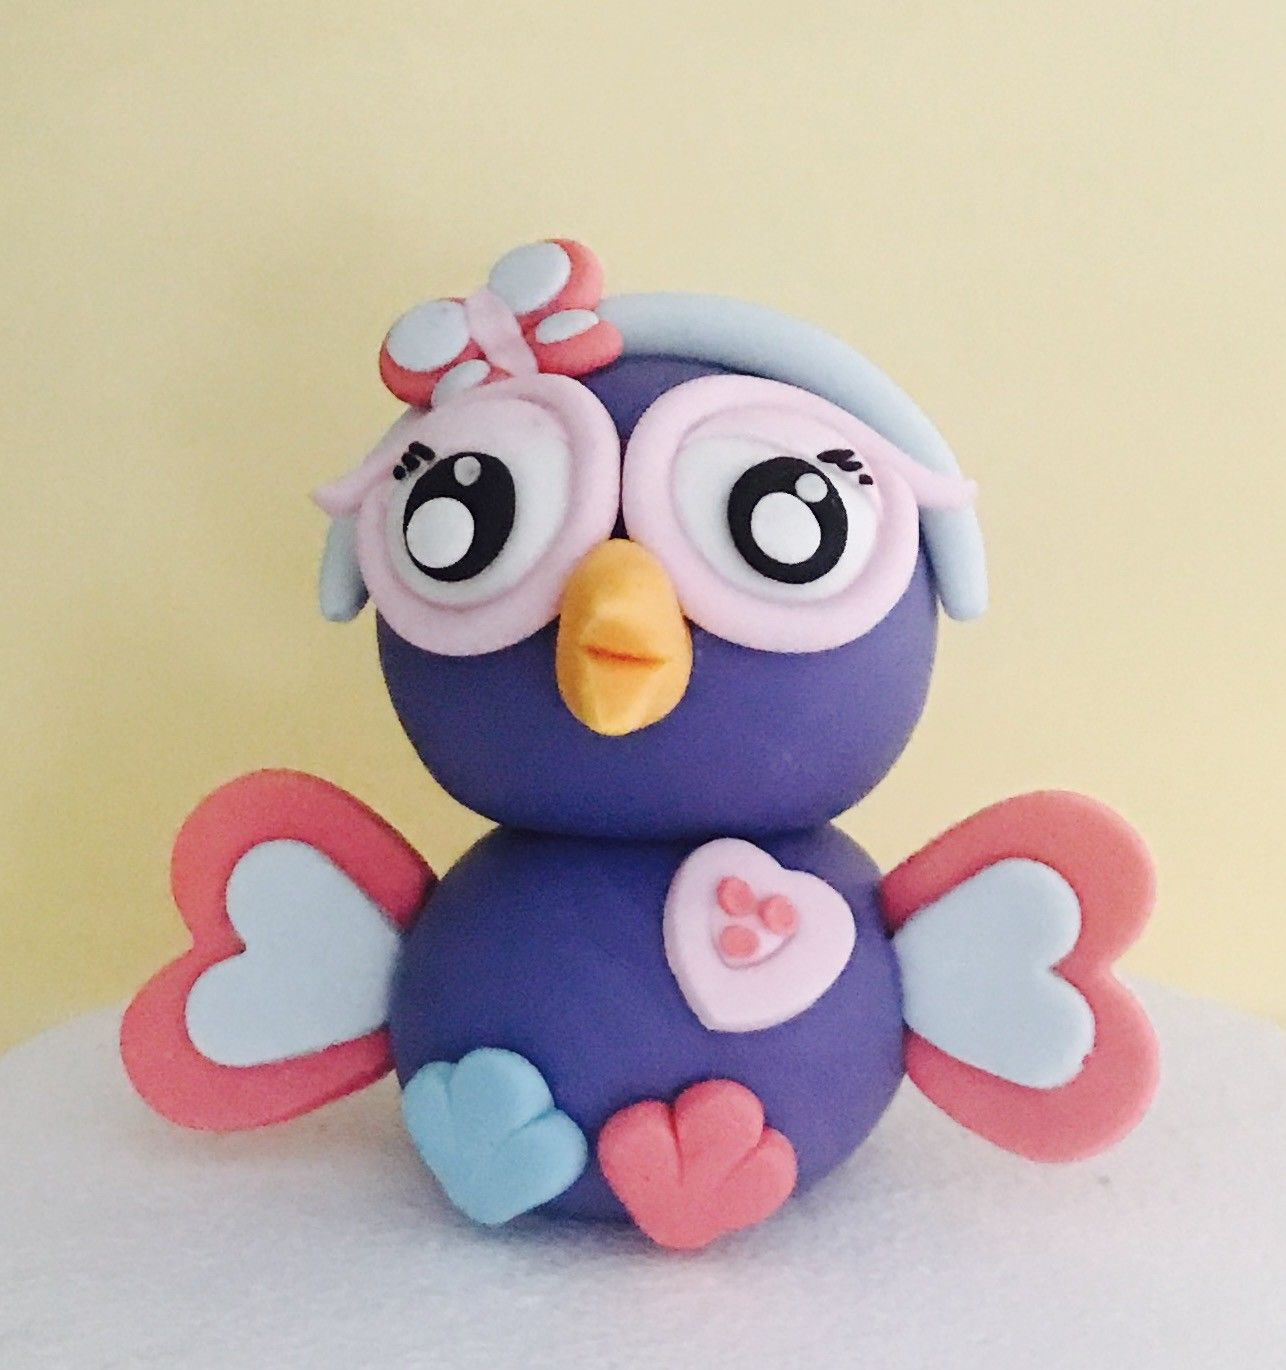 Pleasing Owl Cake Toppers Shop Owl Cake Toppers Online Funny Birthday Cards Online Aeocydamsfinfo